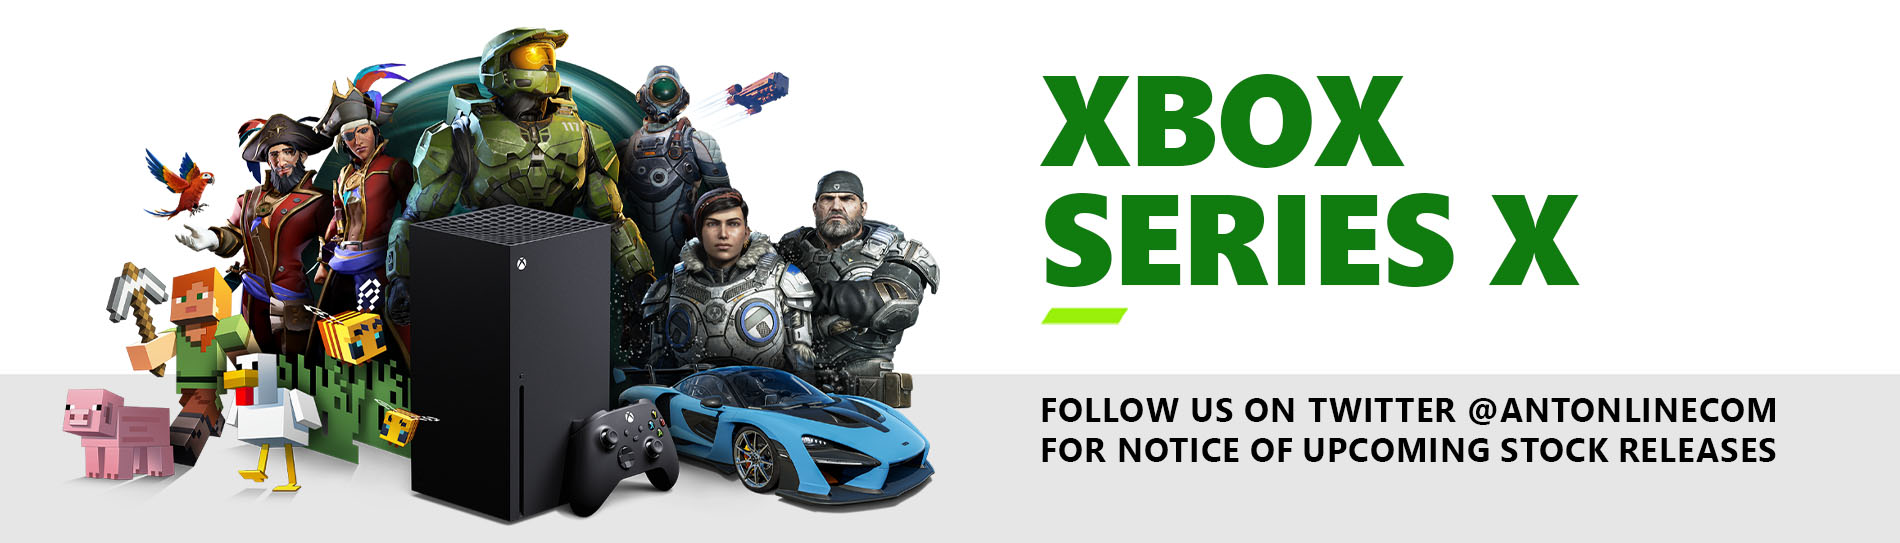 Xboxseriesx Followus